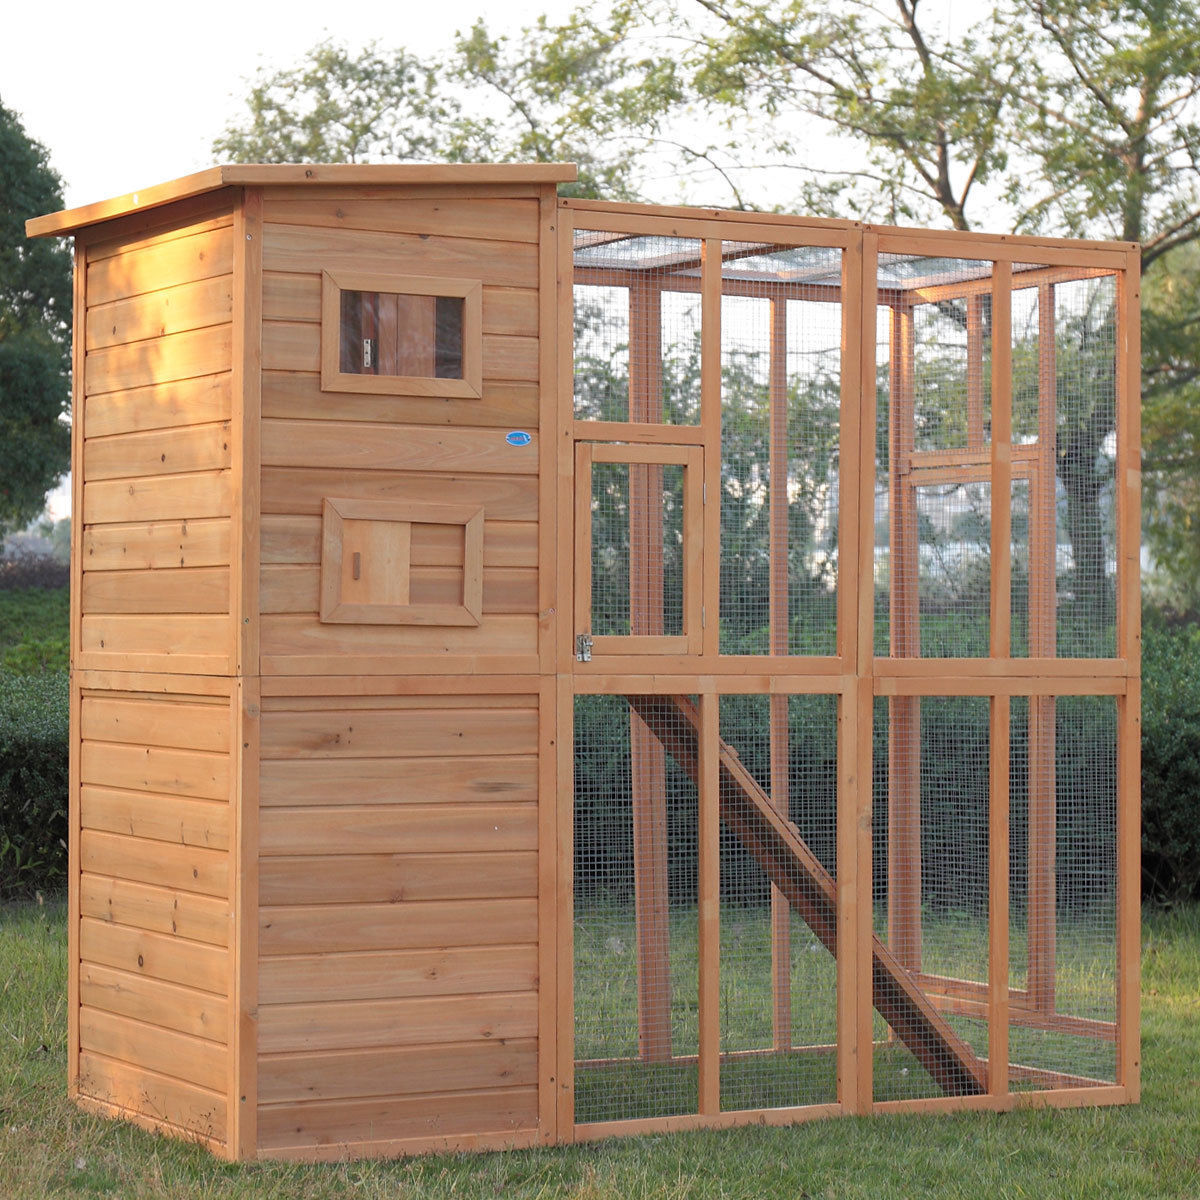 Cat House Cage For Outdoor Cats Enclosure Run Shelter Wooden Pet